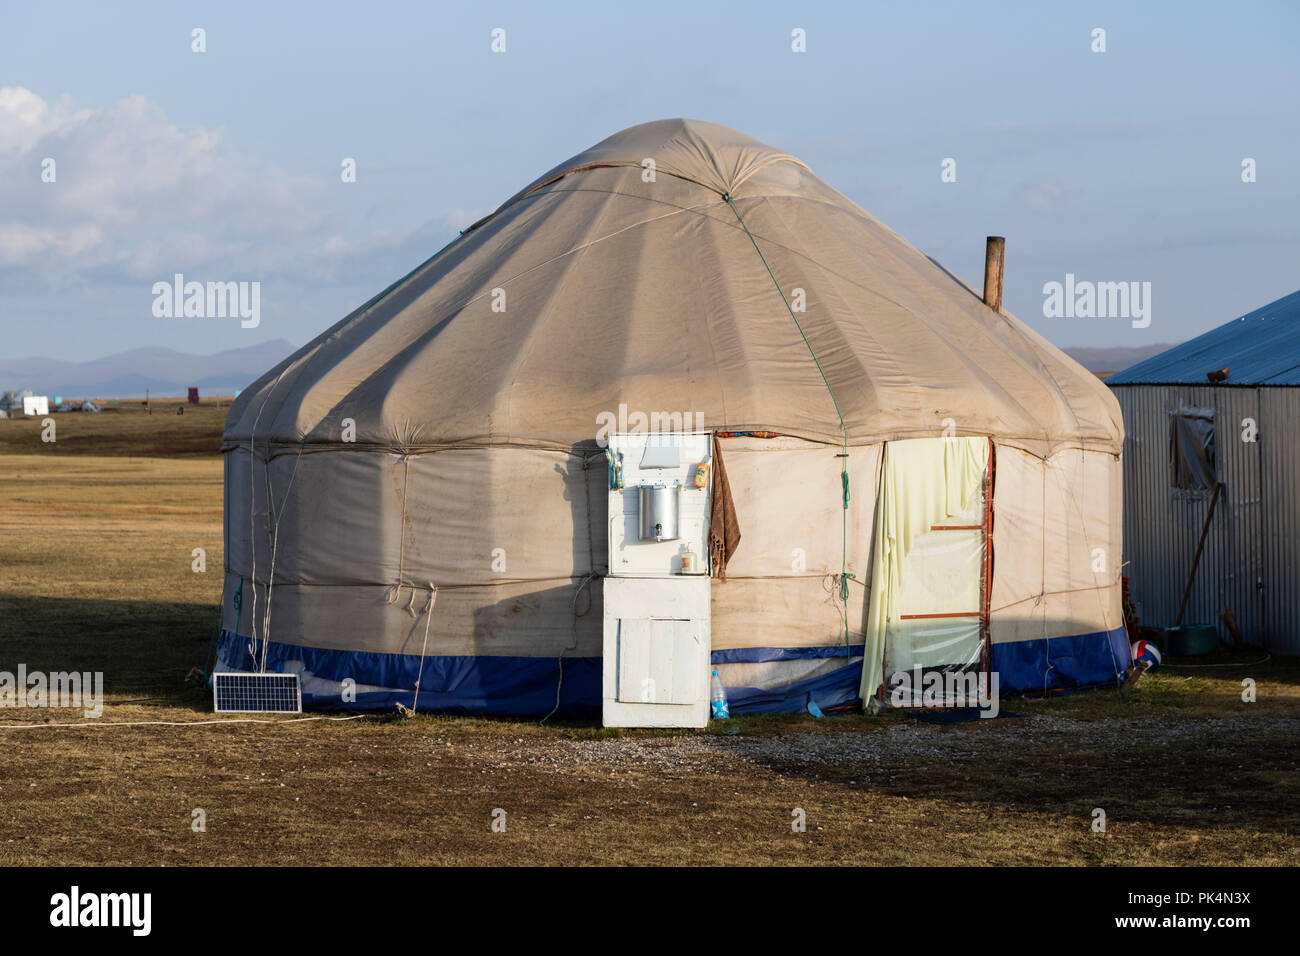 Steppe Traditional Tent Yurt Stock Photos & Steppe